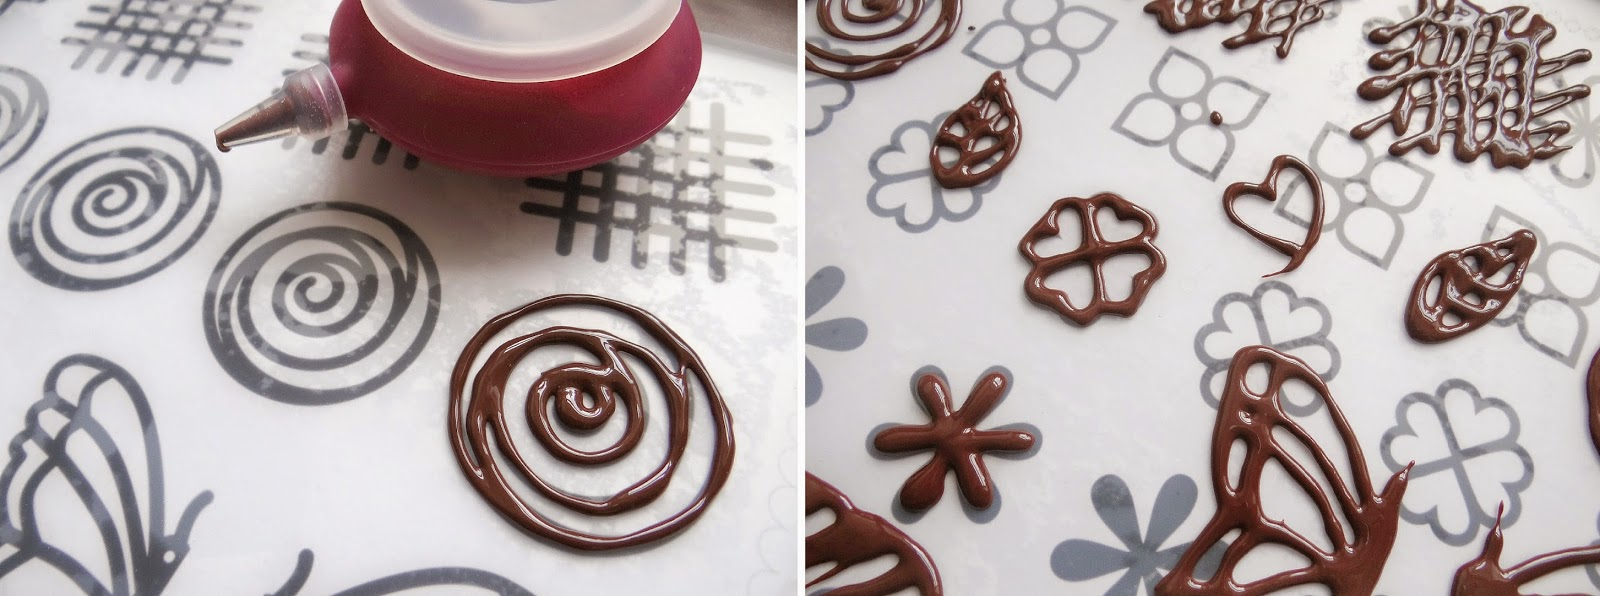 Lekue chocolate making, silicone baking mat, silicone chocolate decorating set